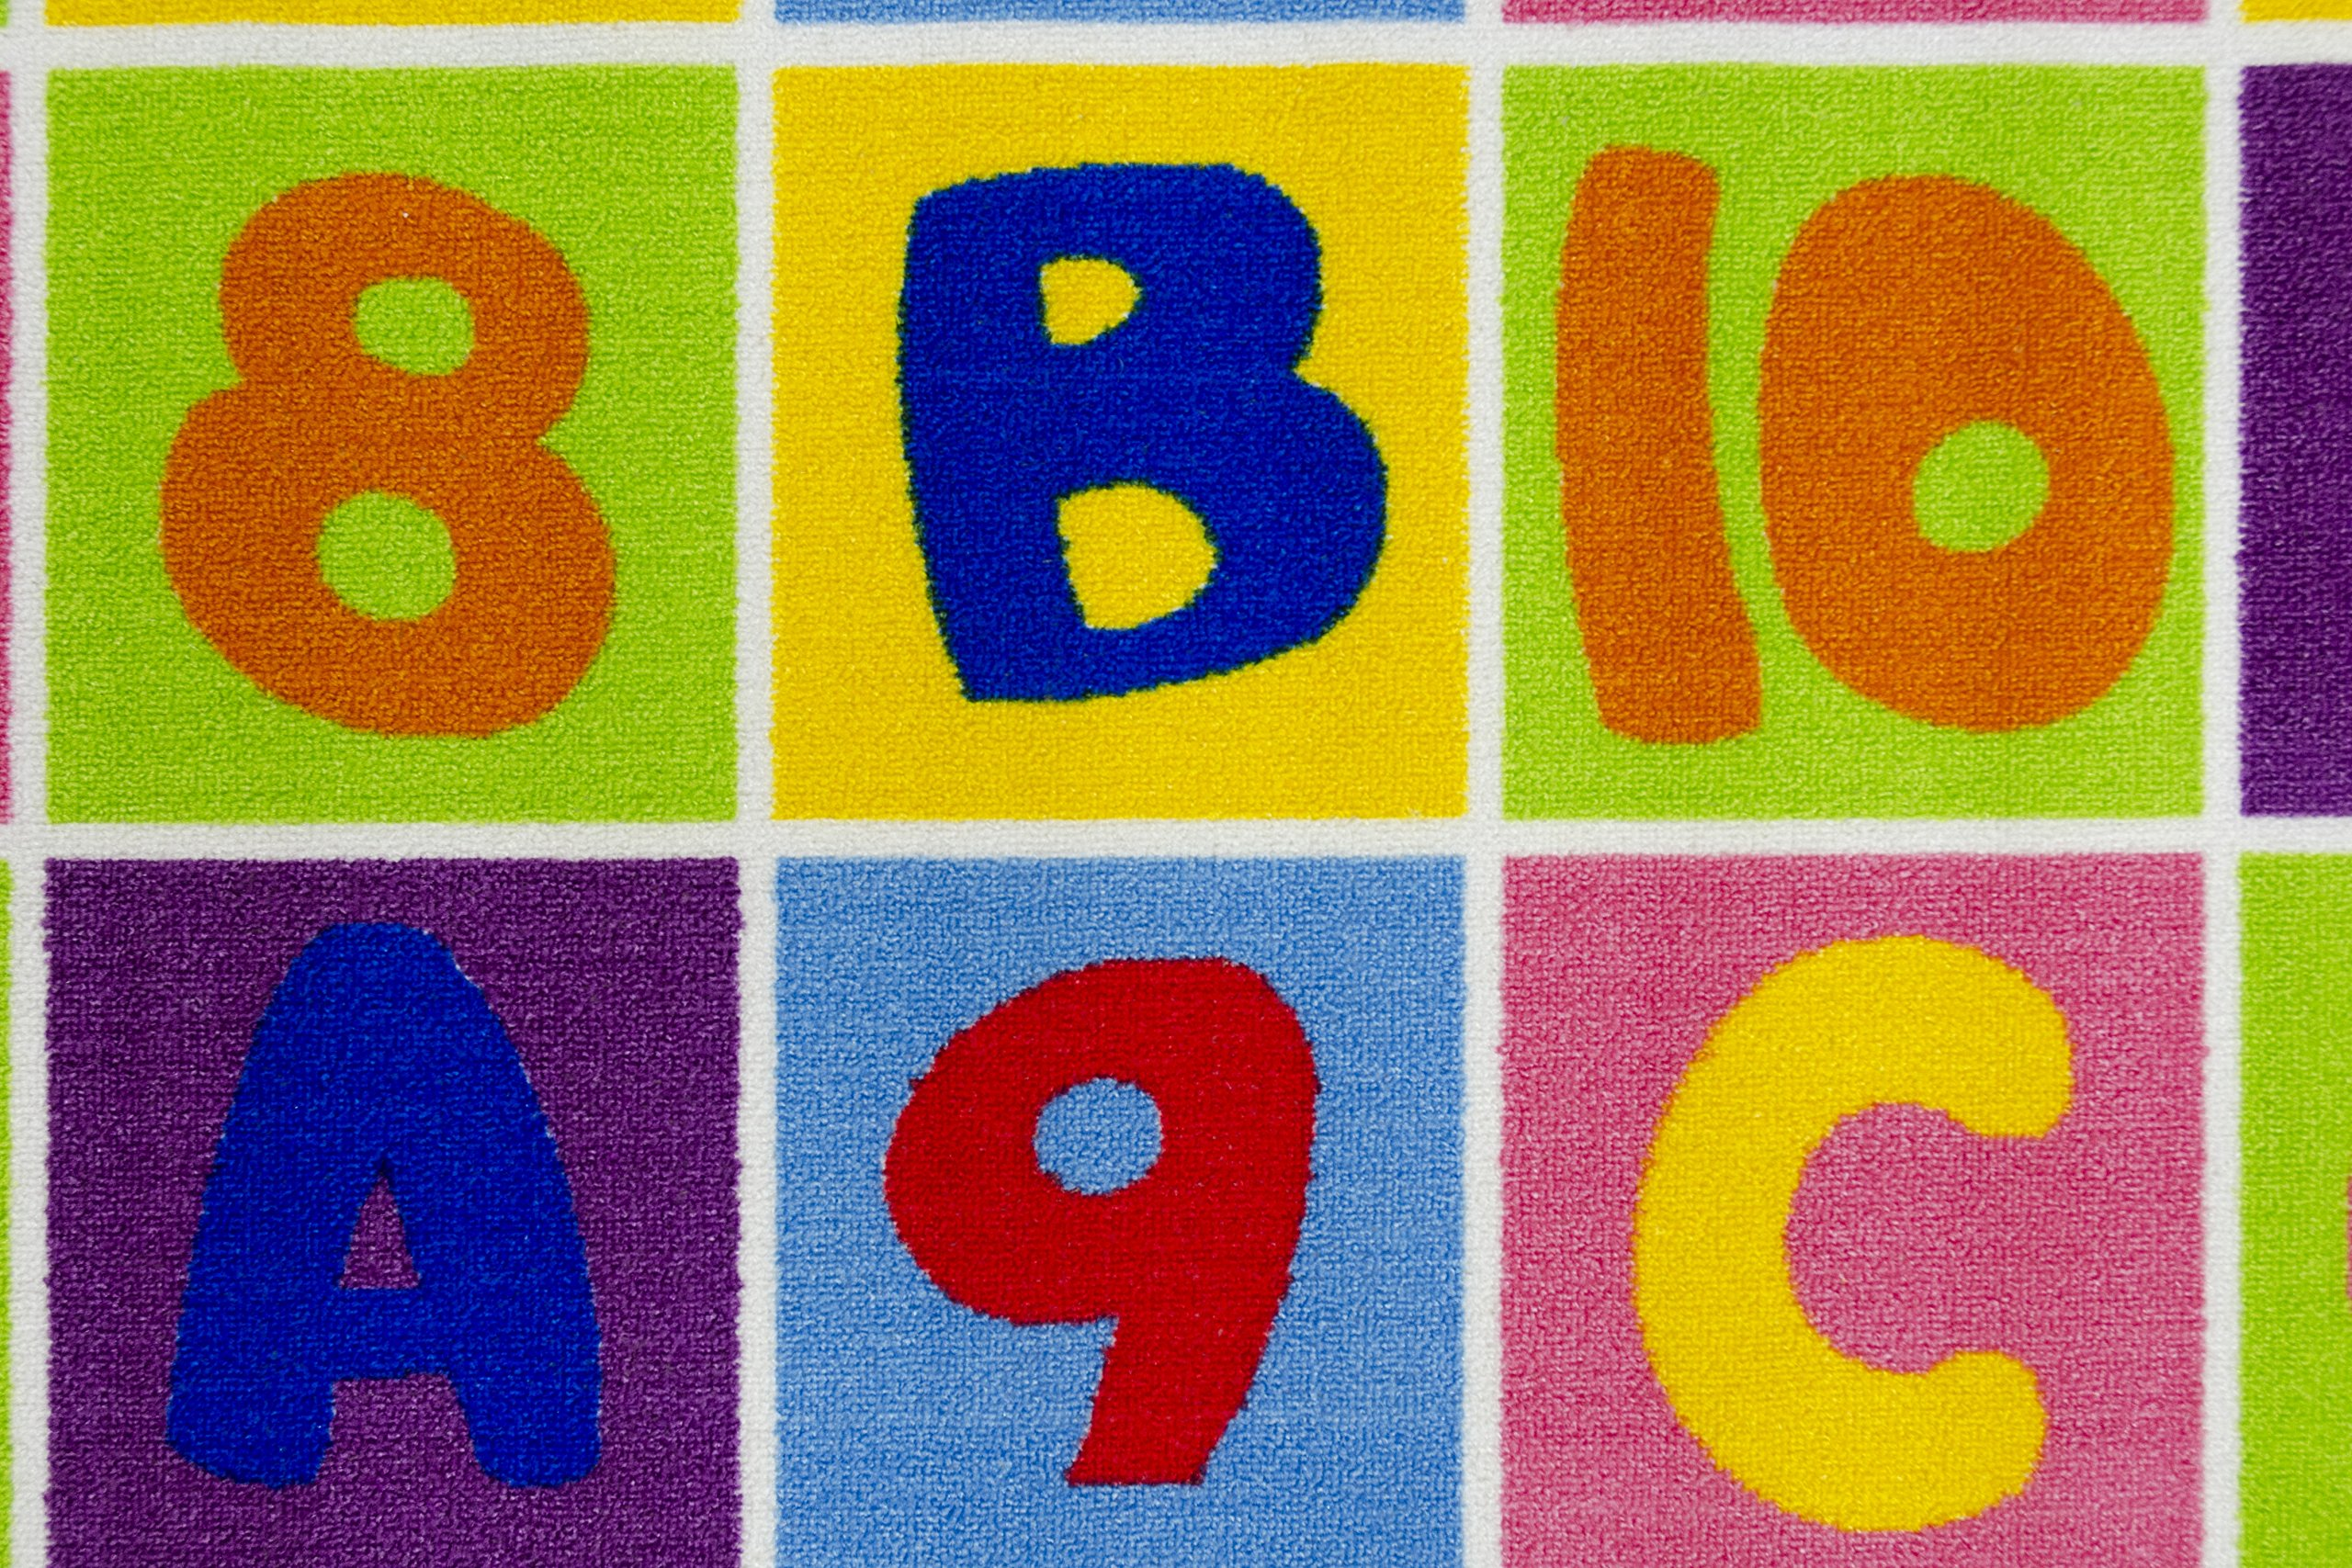 HR'S 5FTX7FT KIDS EDUCATIONAL/PLAYTIME RUG (LETTERS AND NUMBERS)PLEASE CHECK ALL THE PICTURES.